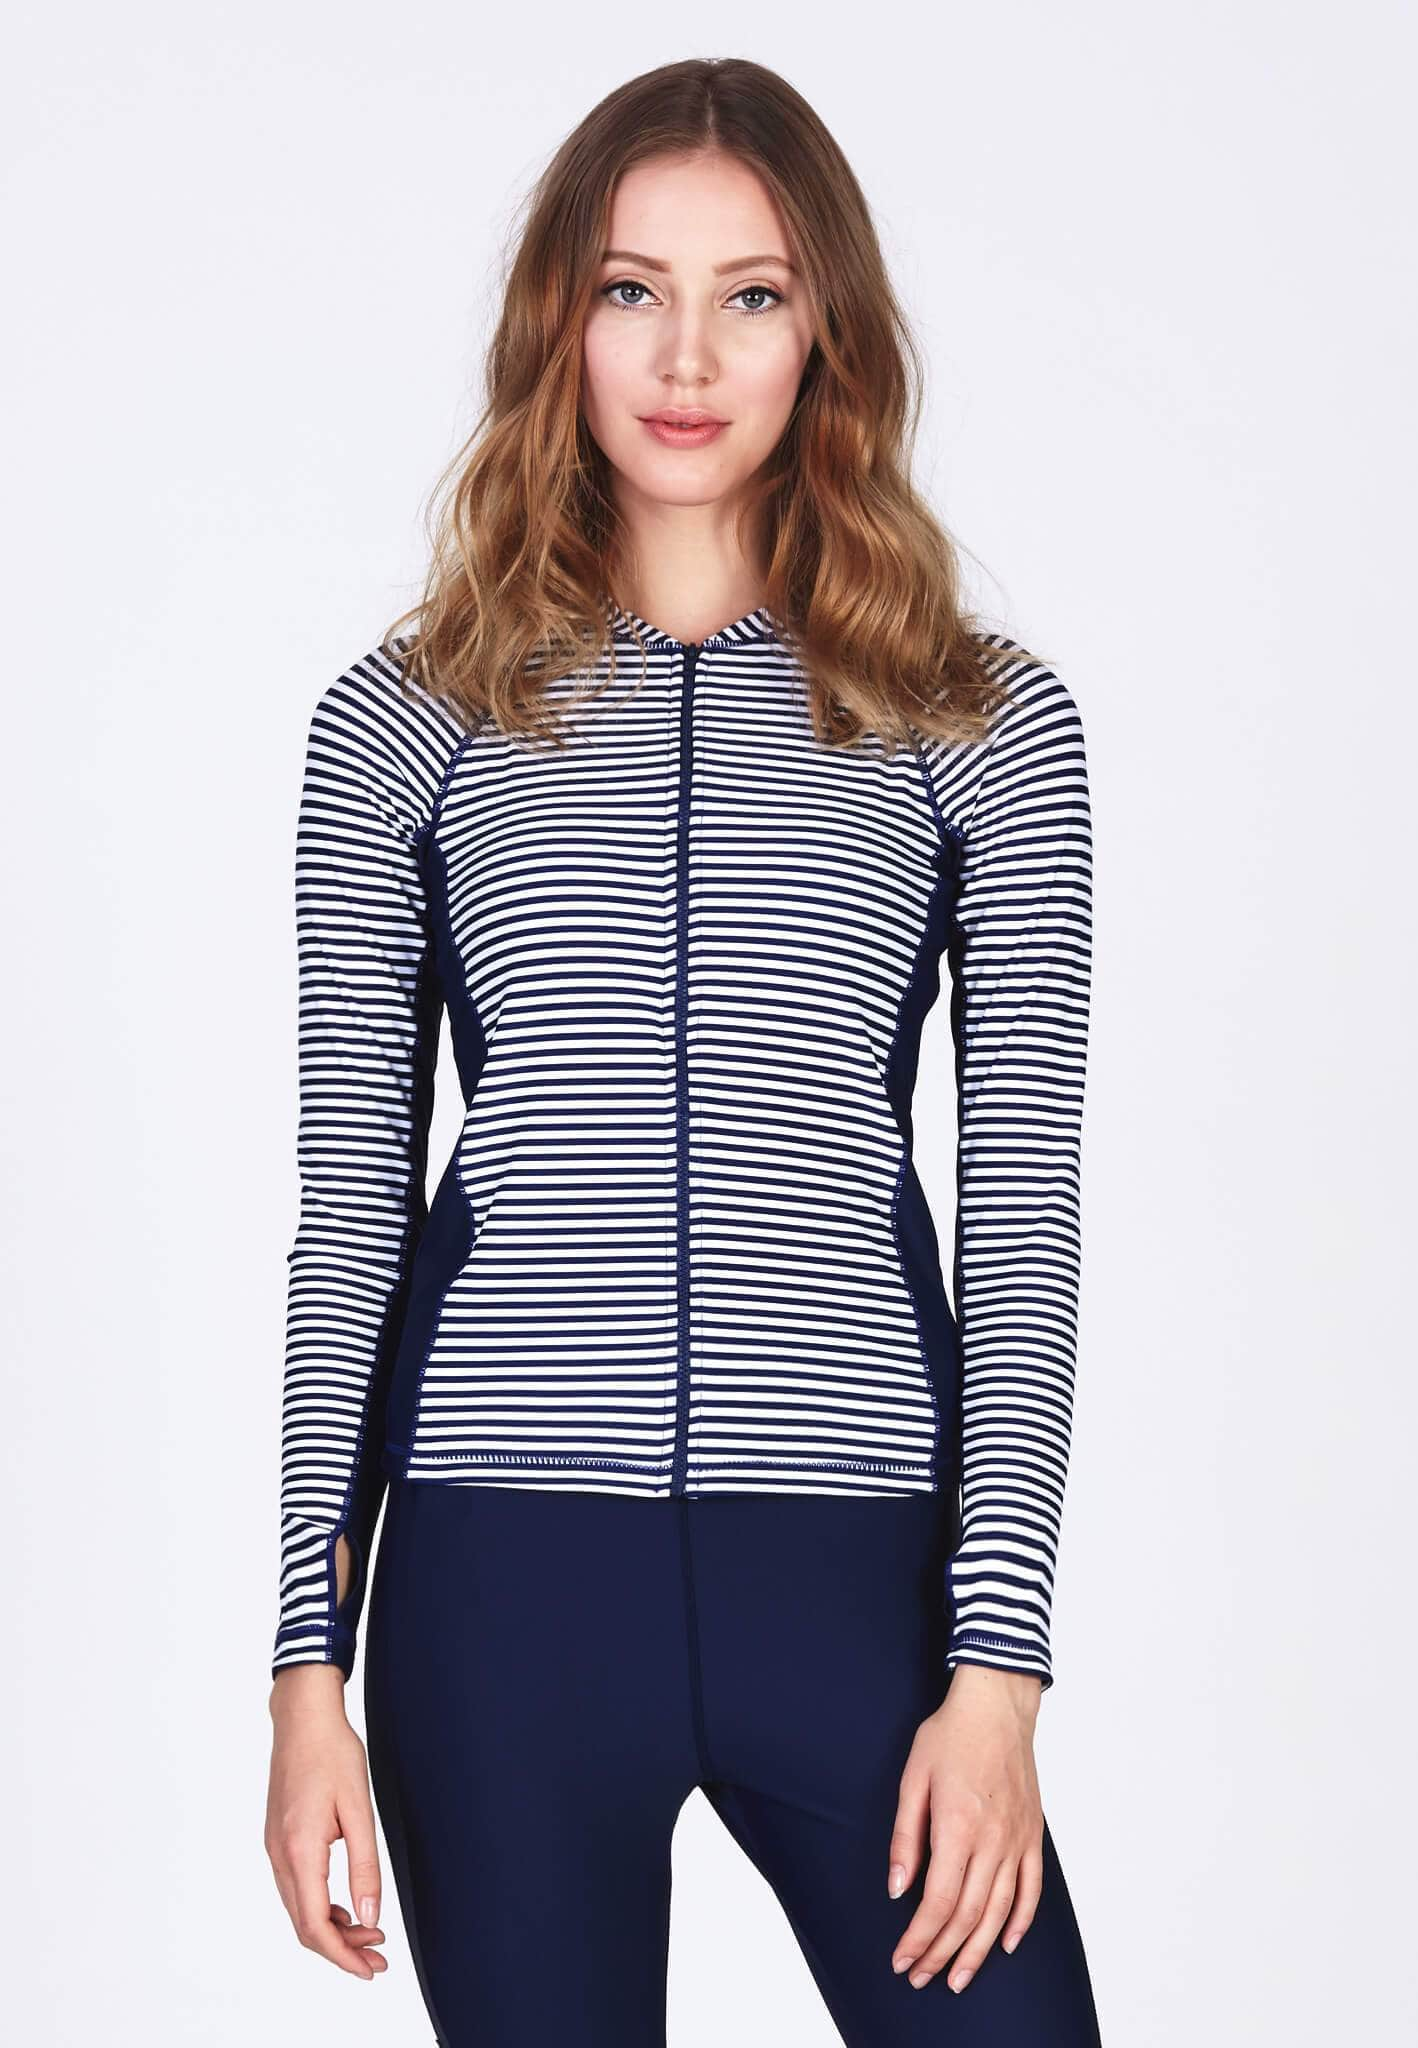 UPF50+ Zip Front Rashguard in Stripes/ Navy (XS - 2XL)